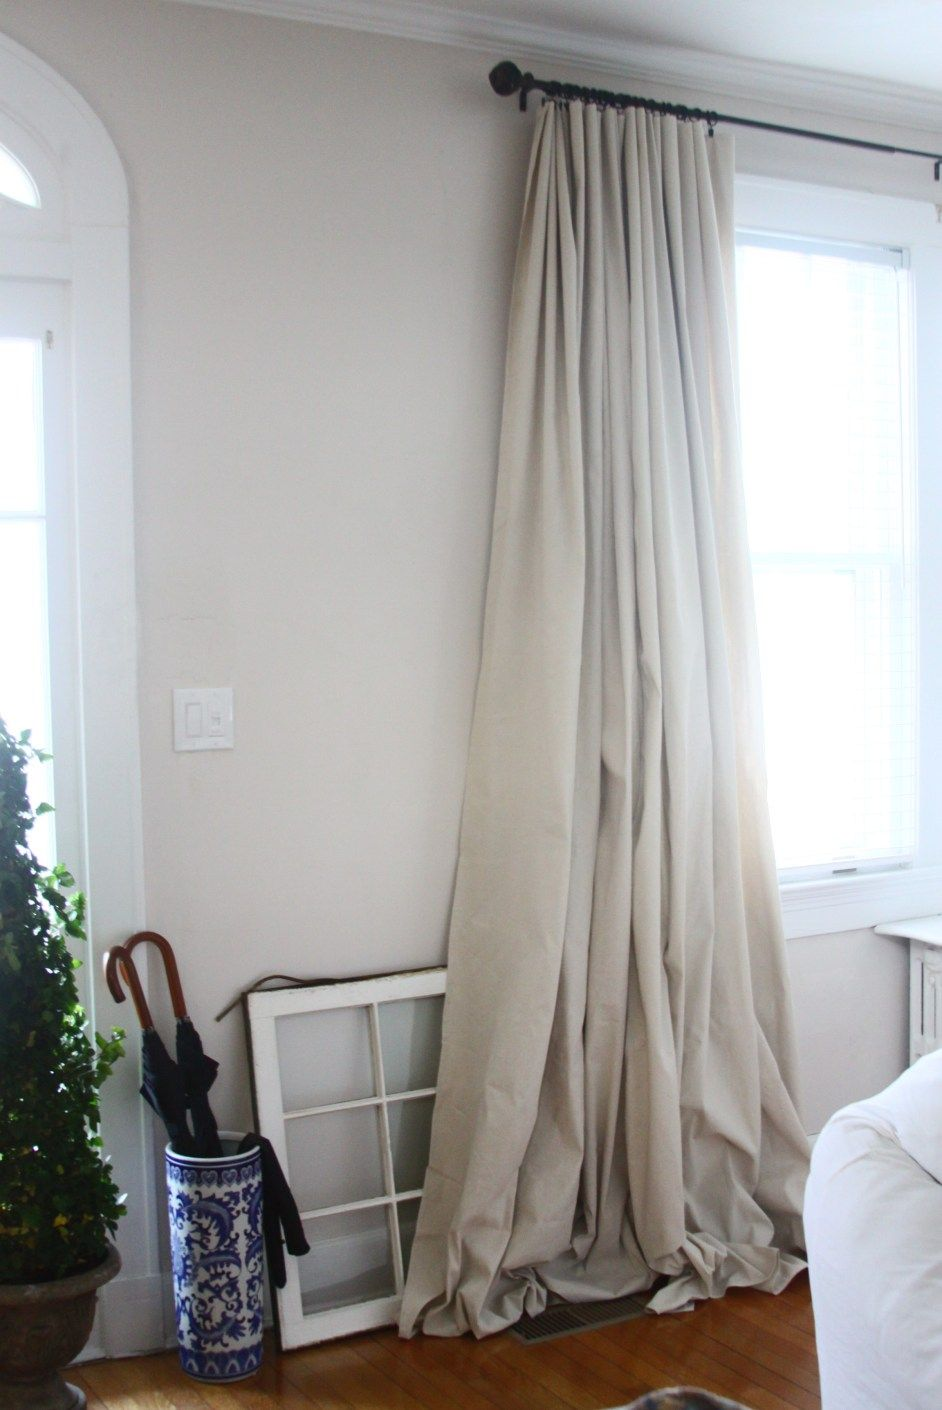 Dropcloth CurtainsIuve these makes for great coverage on tall